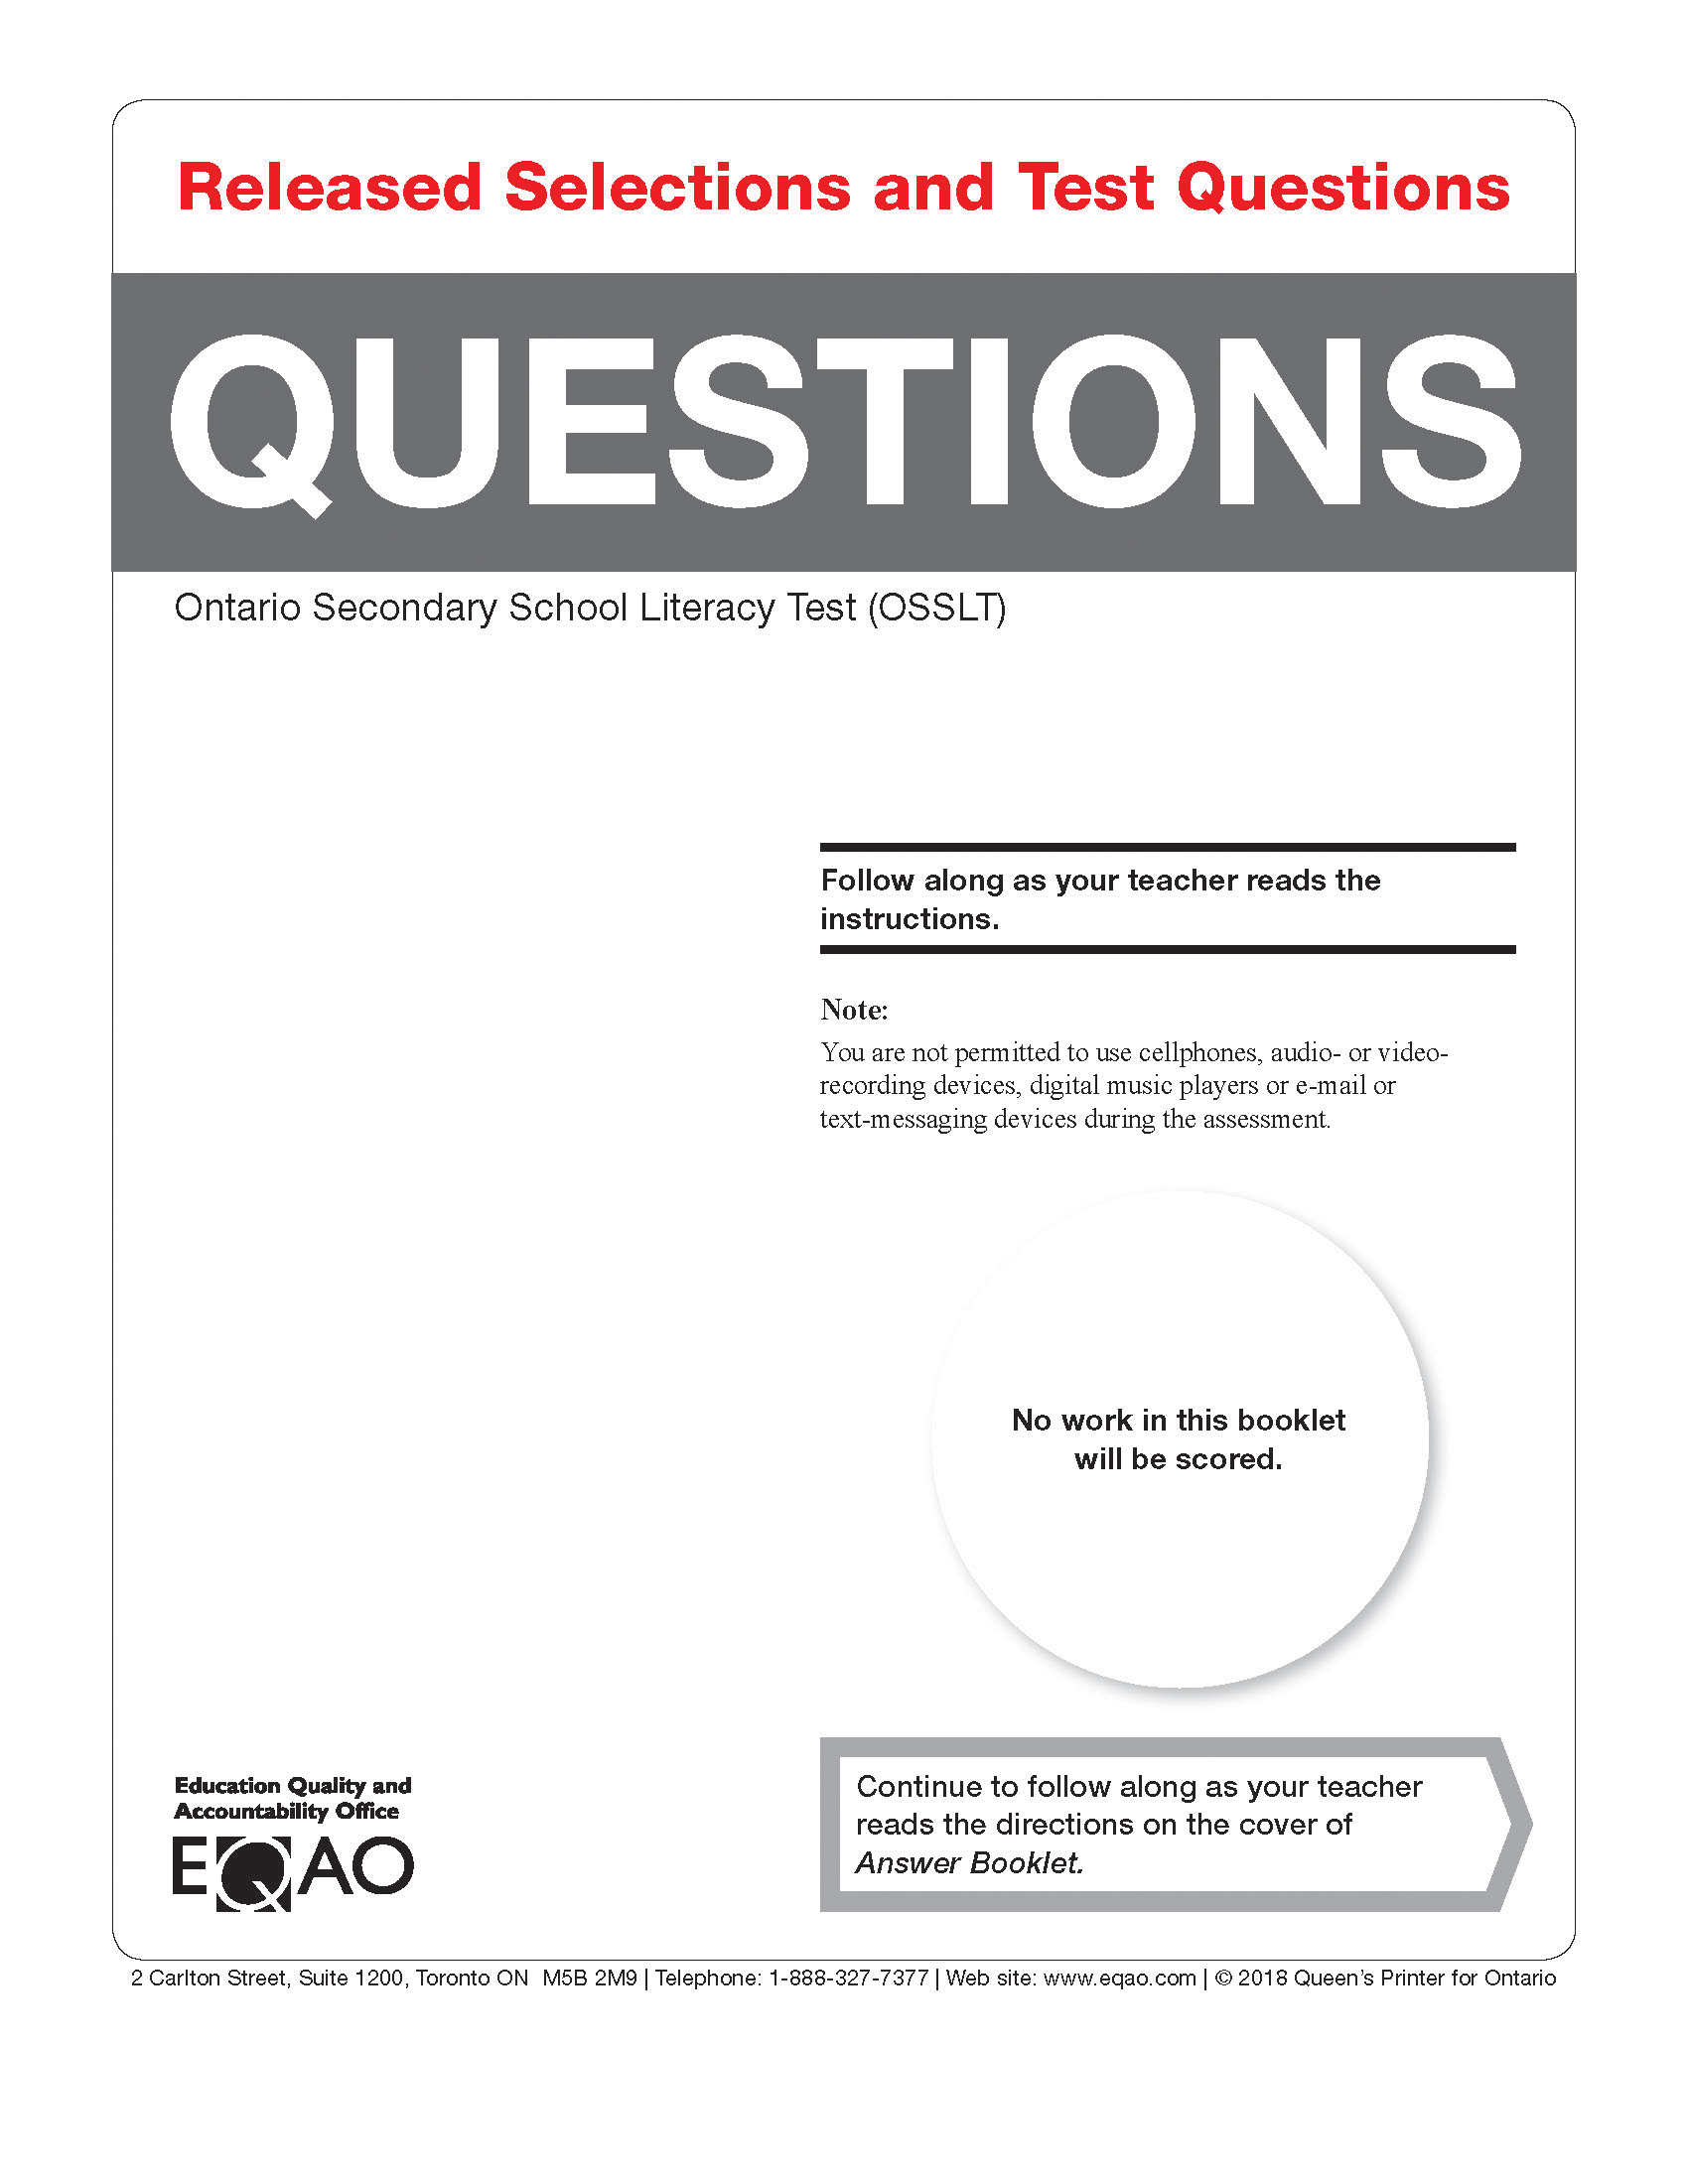 OSSLT Released Questions